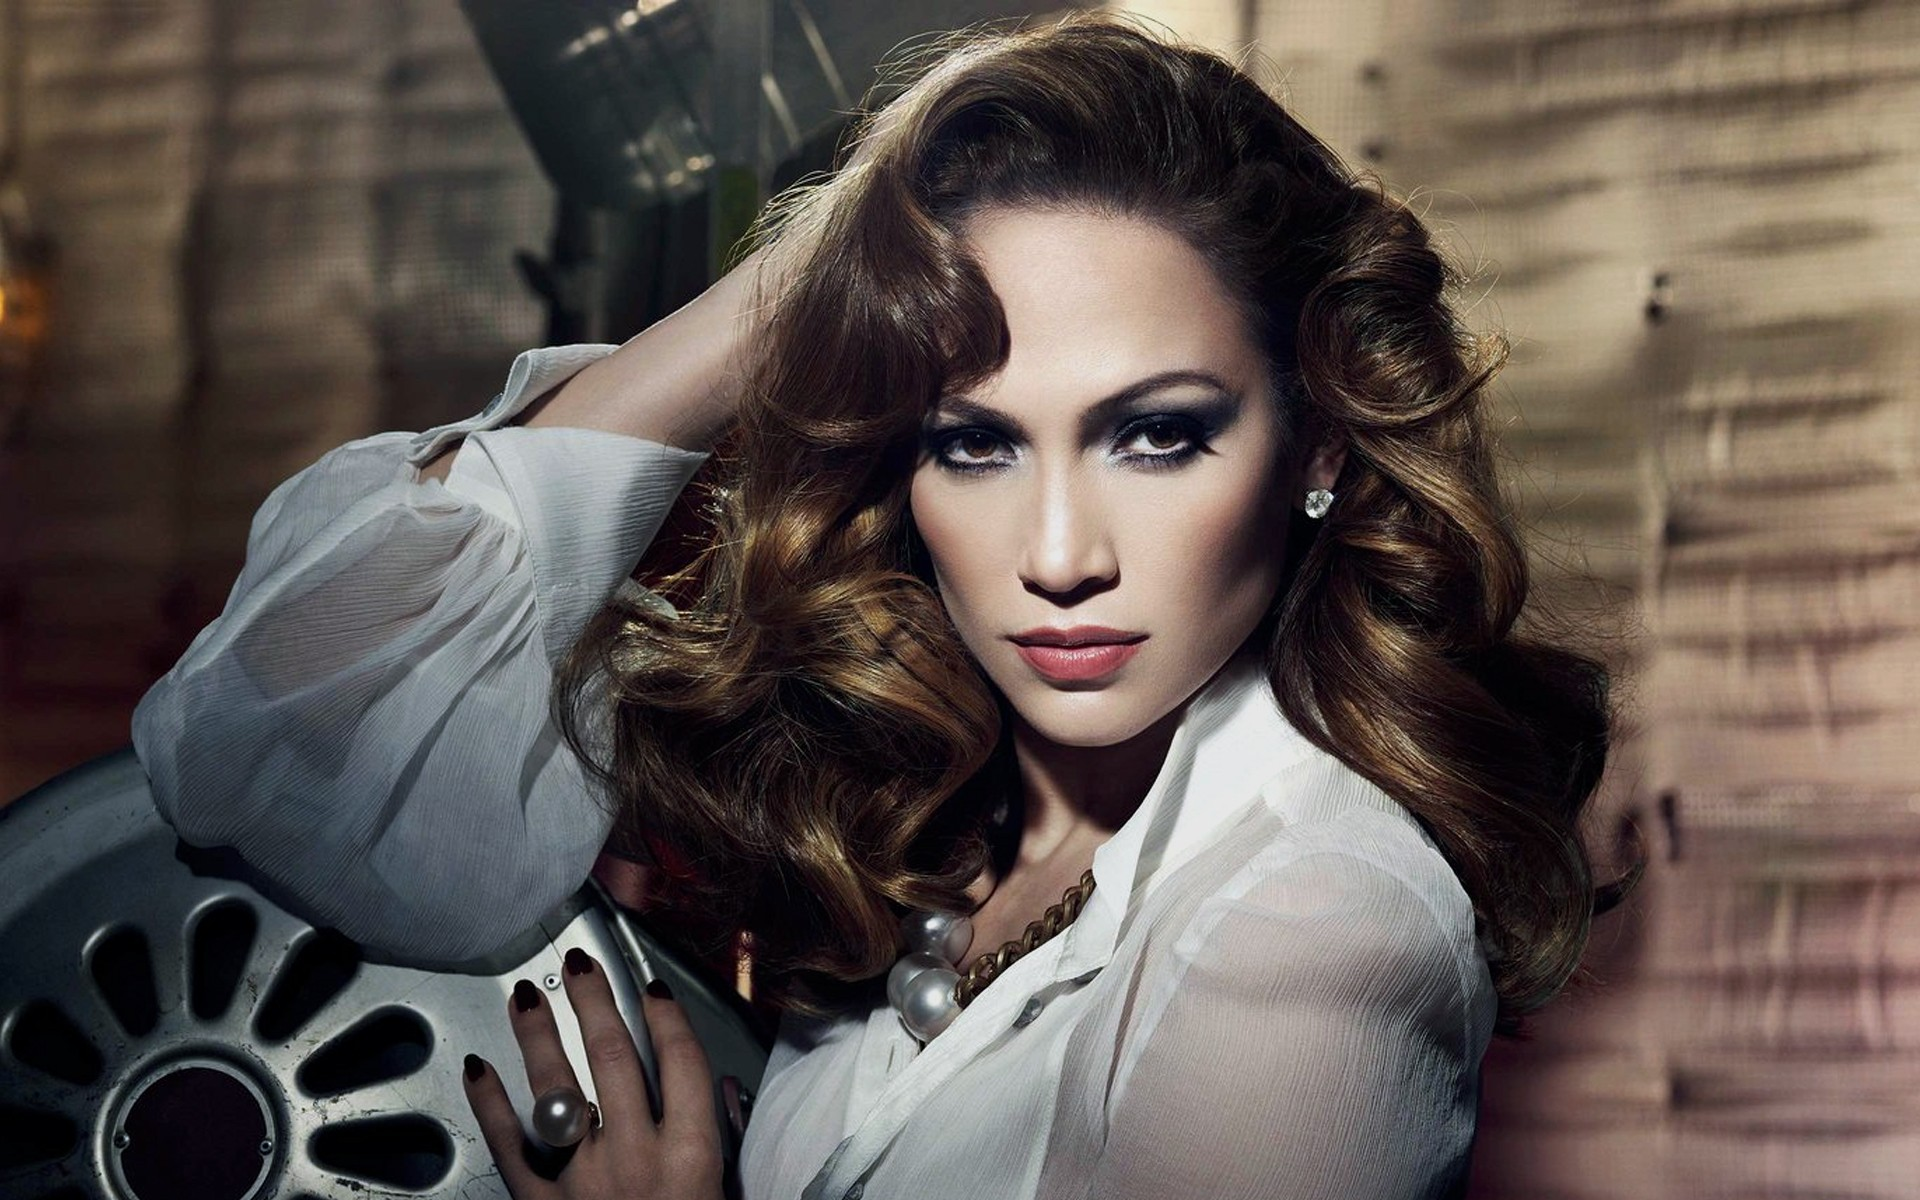 Love Wallpapers New Style : Jennifer Lopez HD wallpapers PoPoPics.com